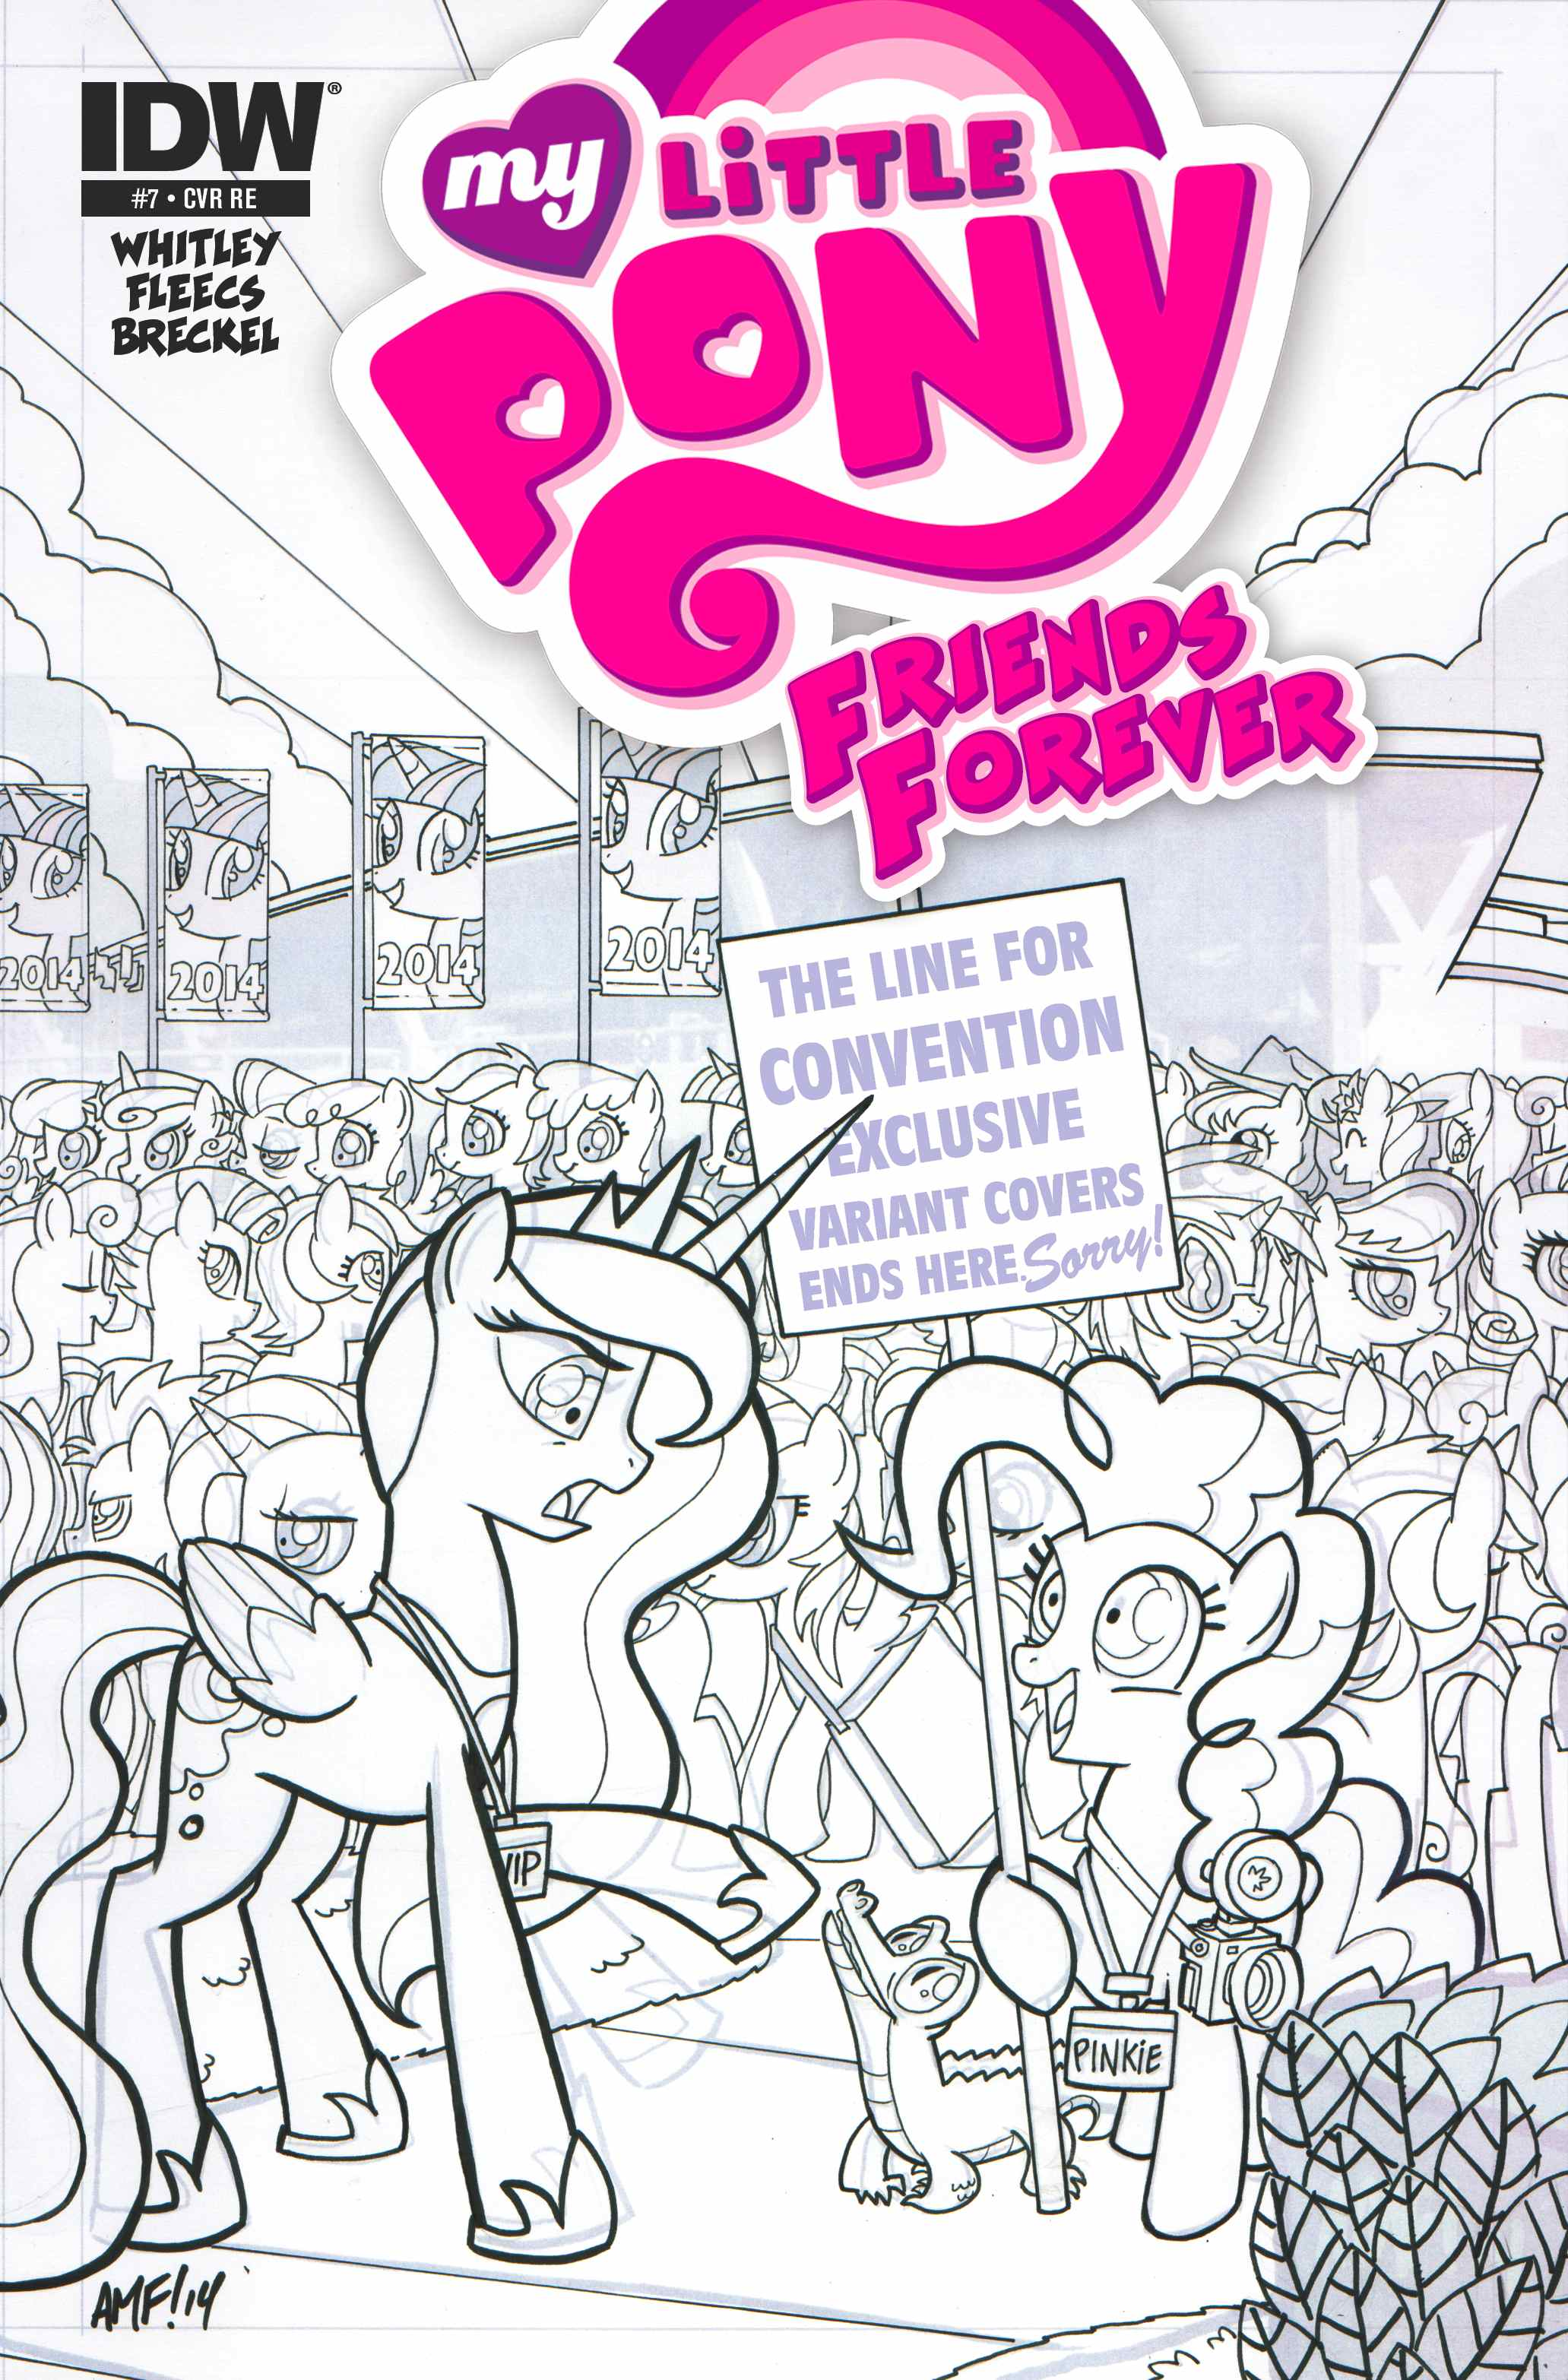 My Little Pony Friends Forever #7 (OFFICIAL BRONY CON EDITION – Limited Edition Micro Print Cover)